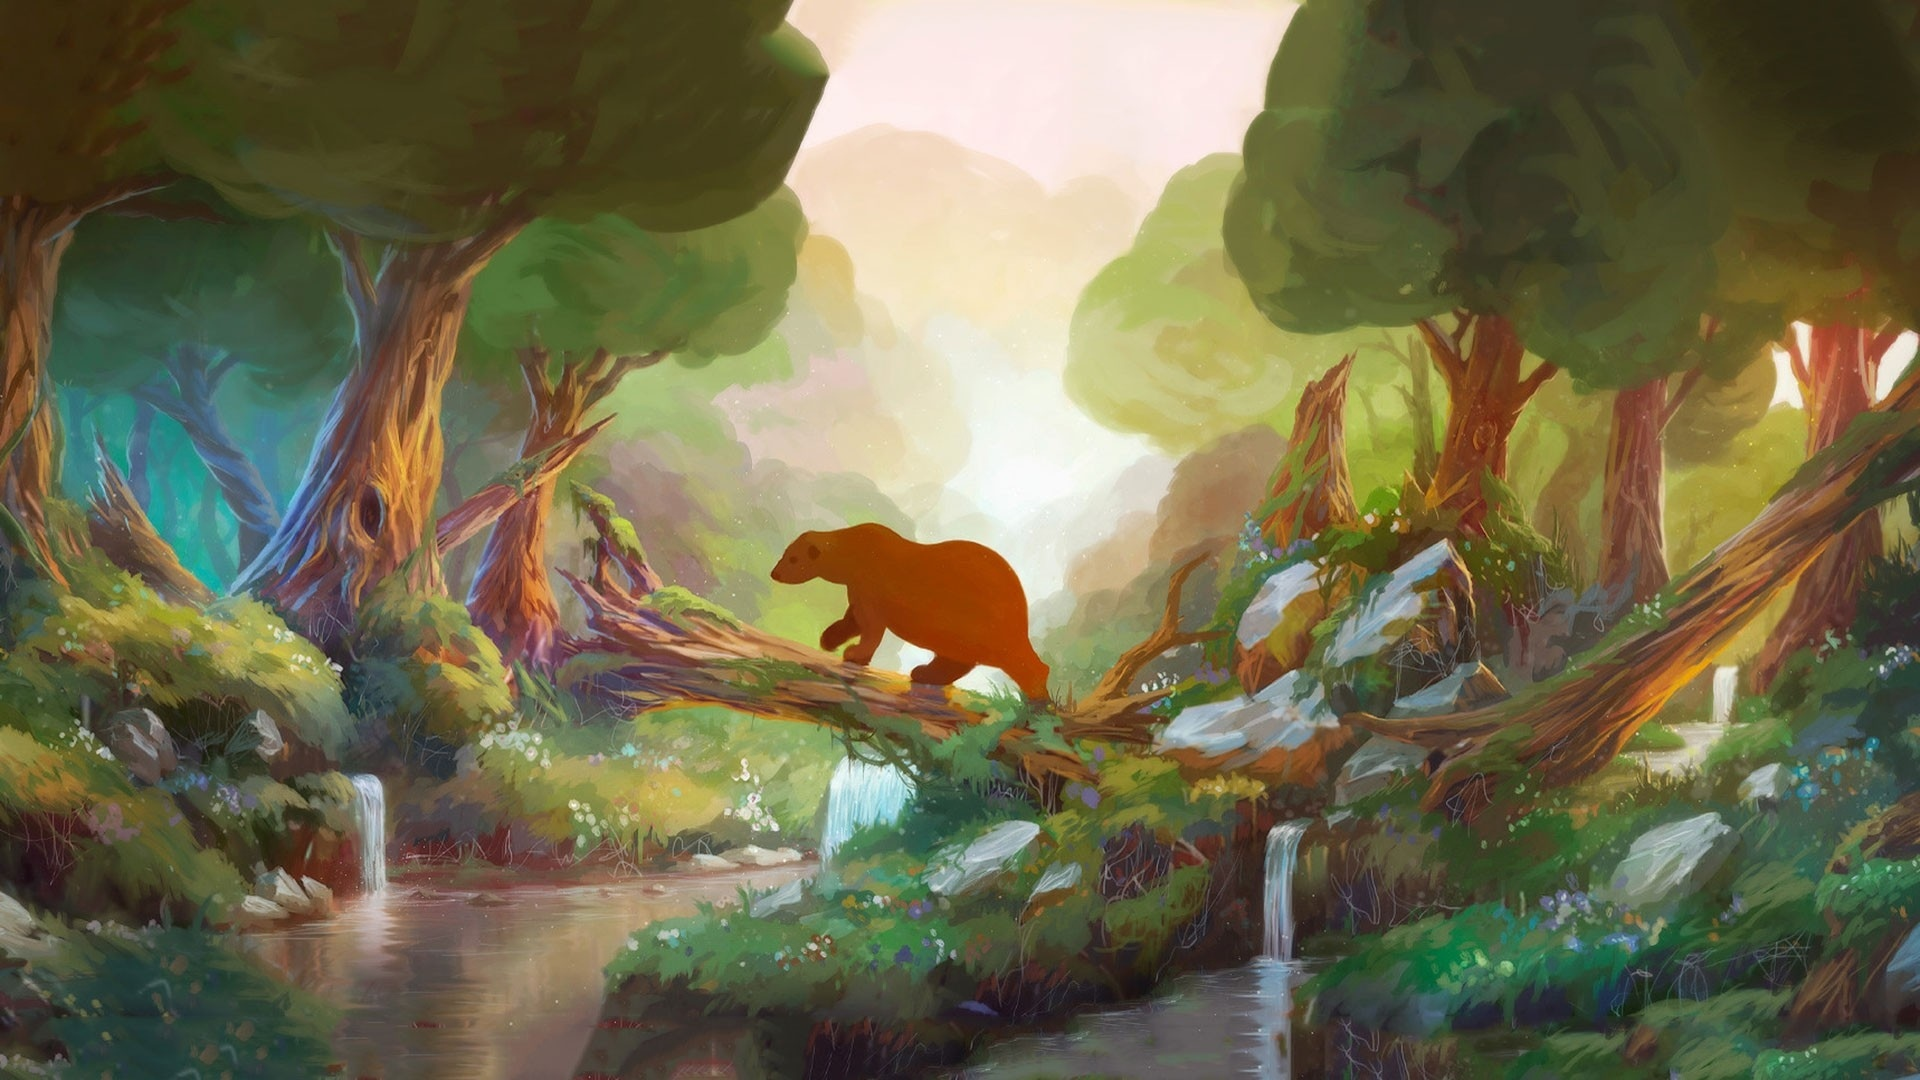 Anime Cartoon Fantasy Children Kids Art Paintings Animals Bears Nature Trees Forest Rivers Stream Waterfall Sunlight Soft Wallpaper 1920x1080 27869 Wallpaperup Looking to the right, you can see how the top. anime cartoon fantasy children kids art